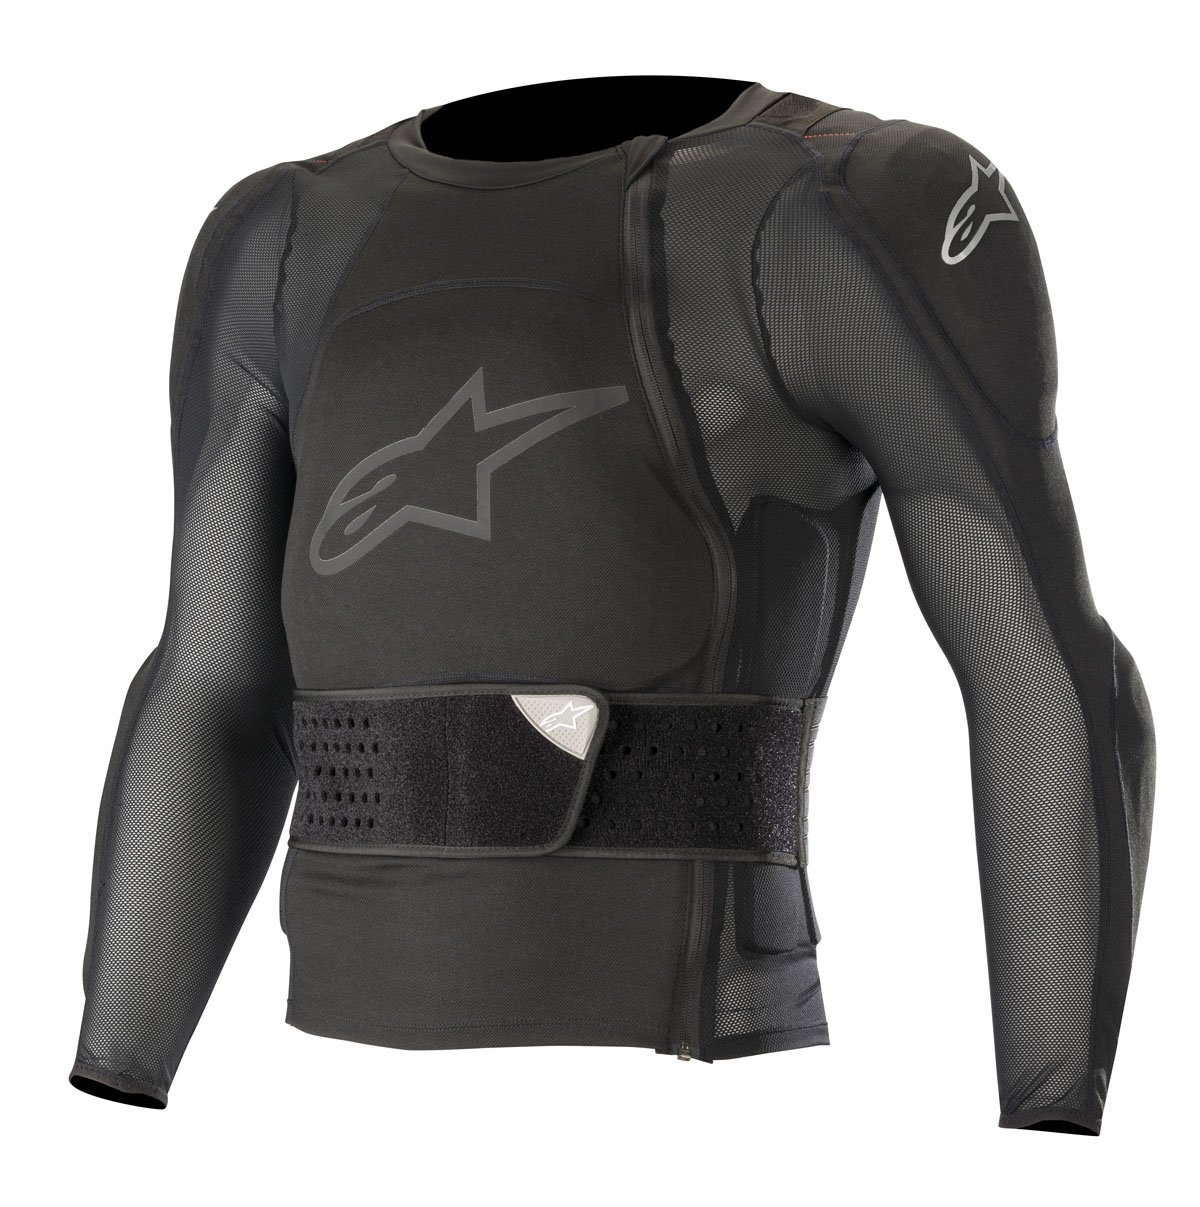 Alpinestars Paragon Pro Protection Jacket body armor | Beskyttelse